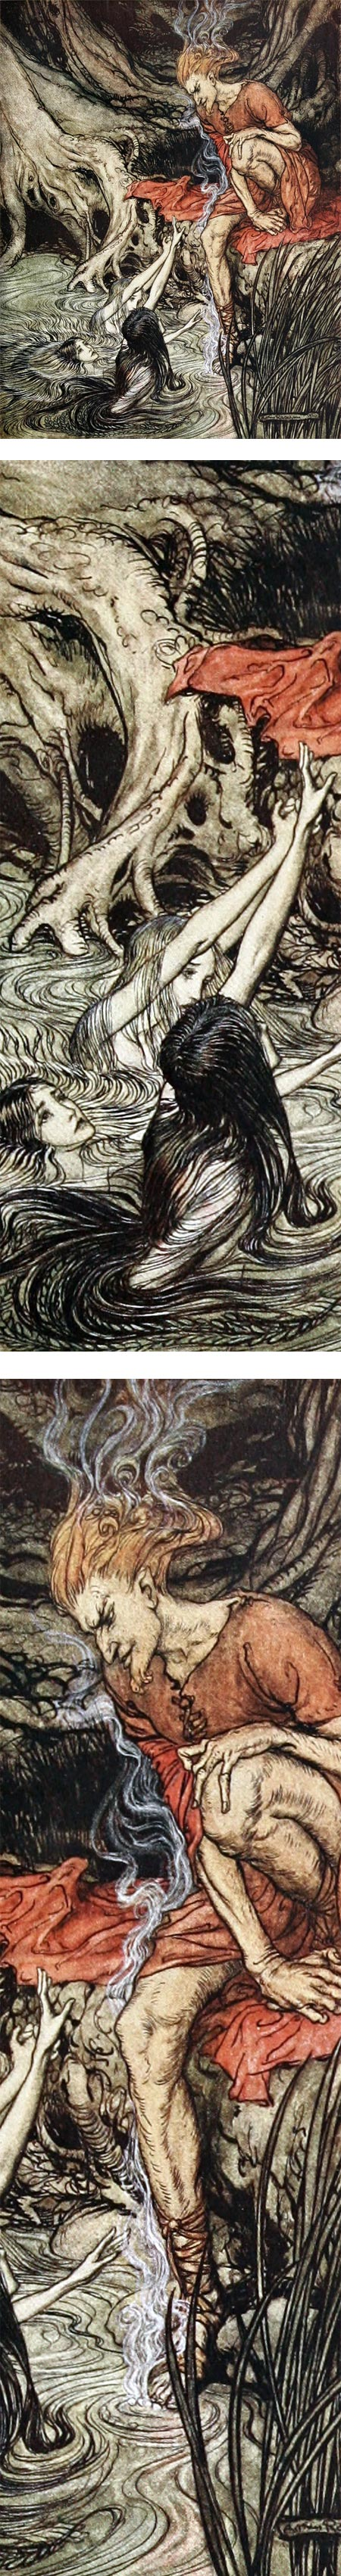 Rhinegold and the Valkyries, Arthur Rackham